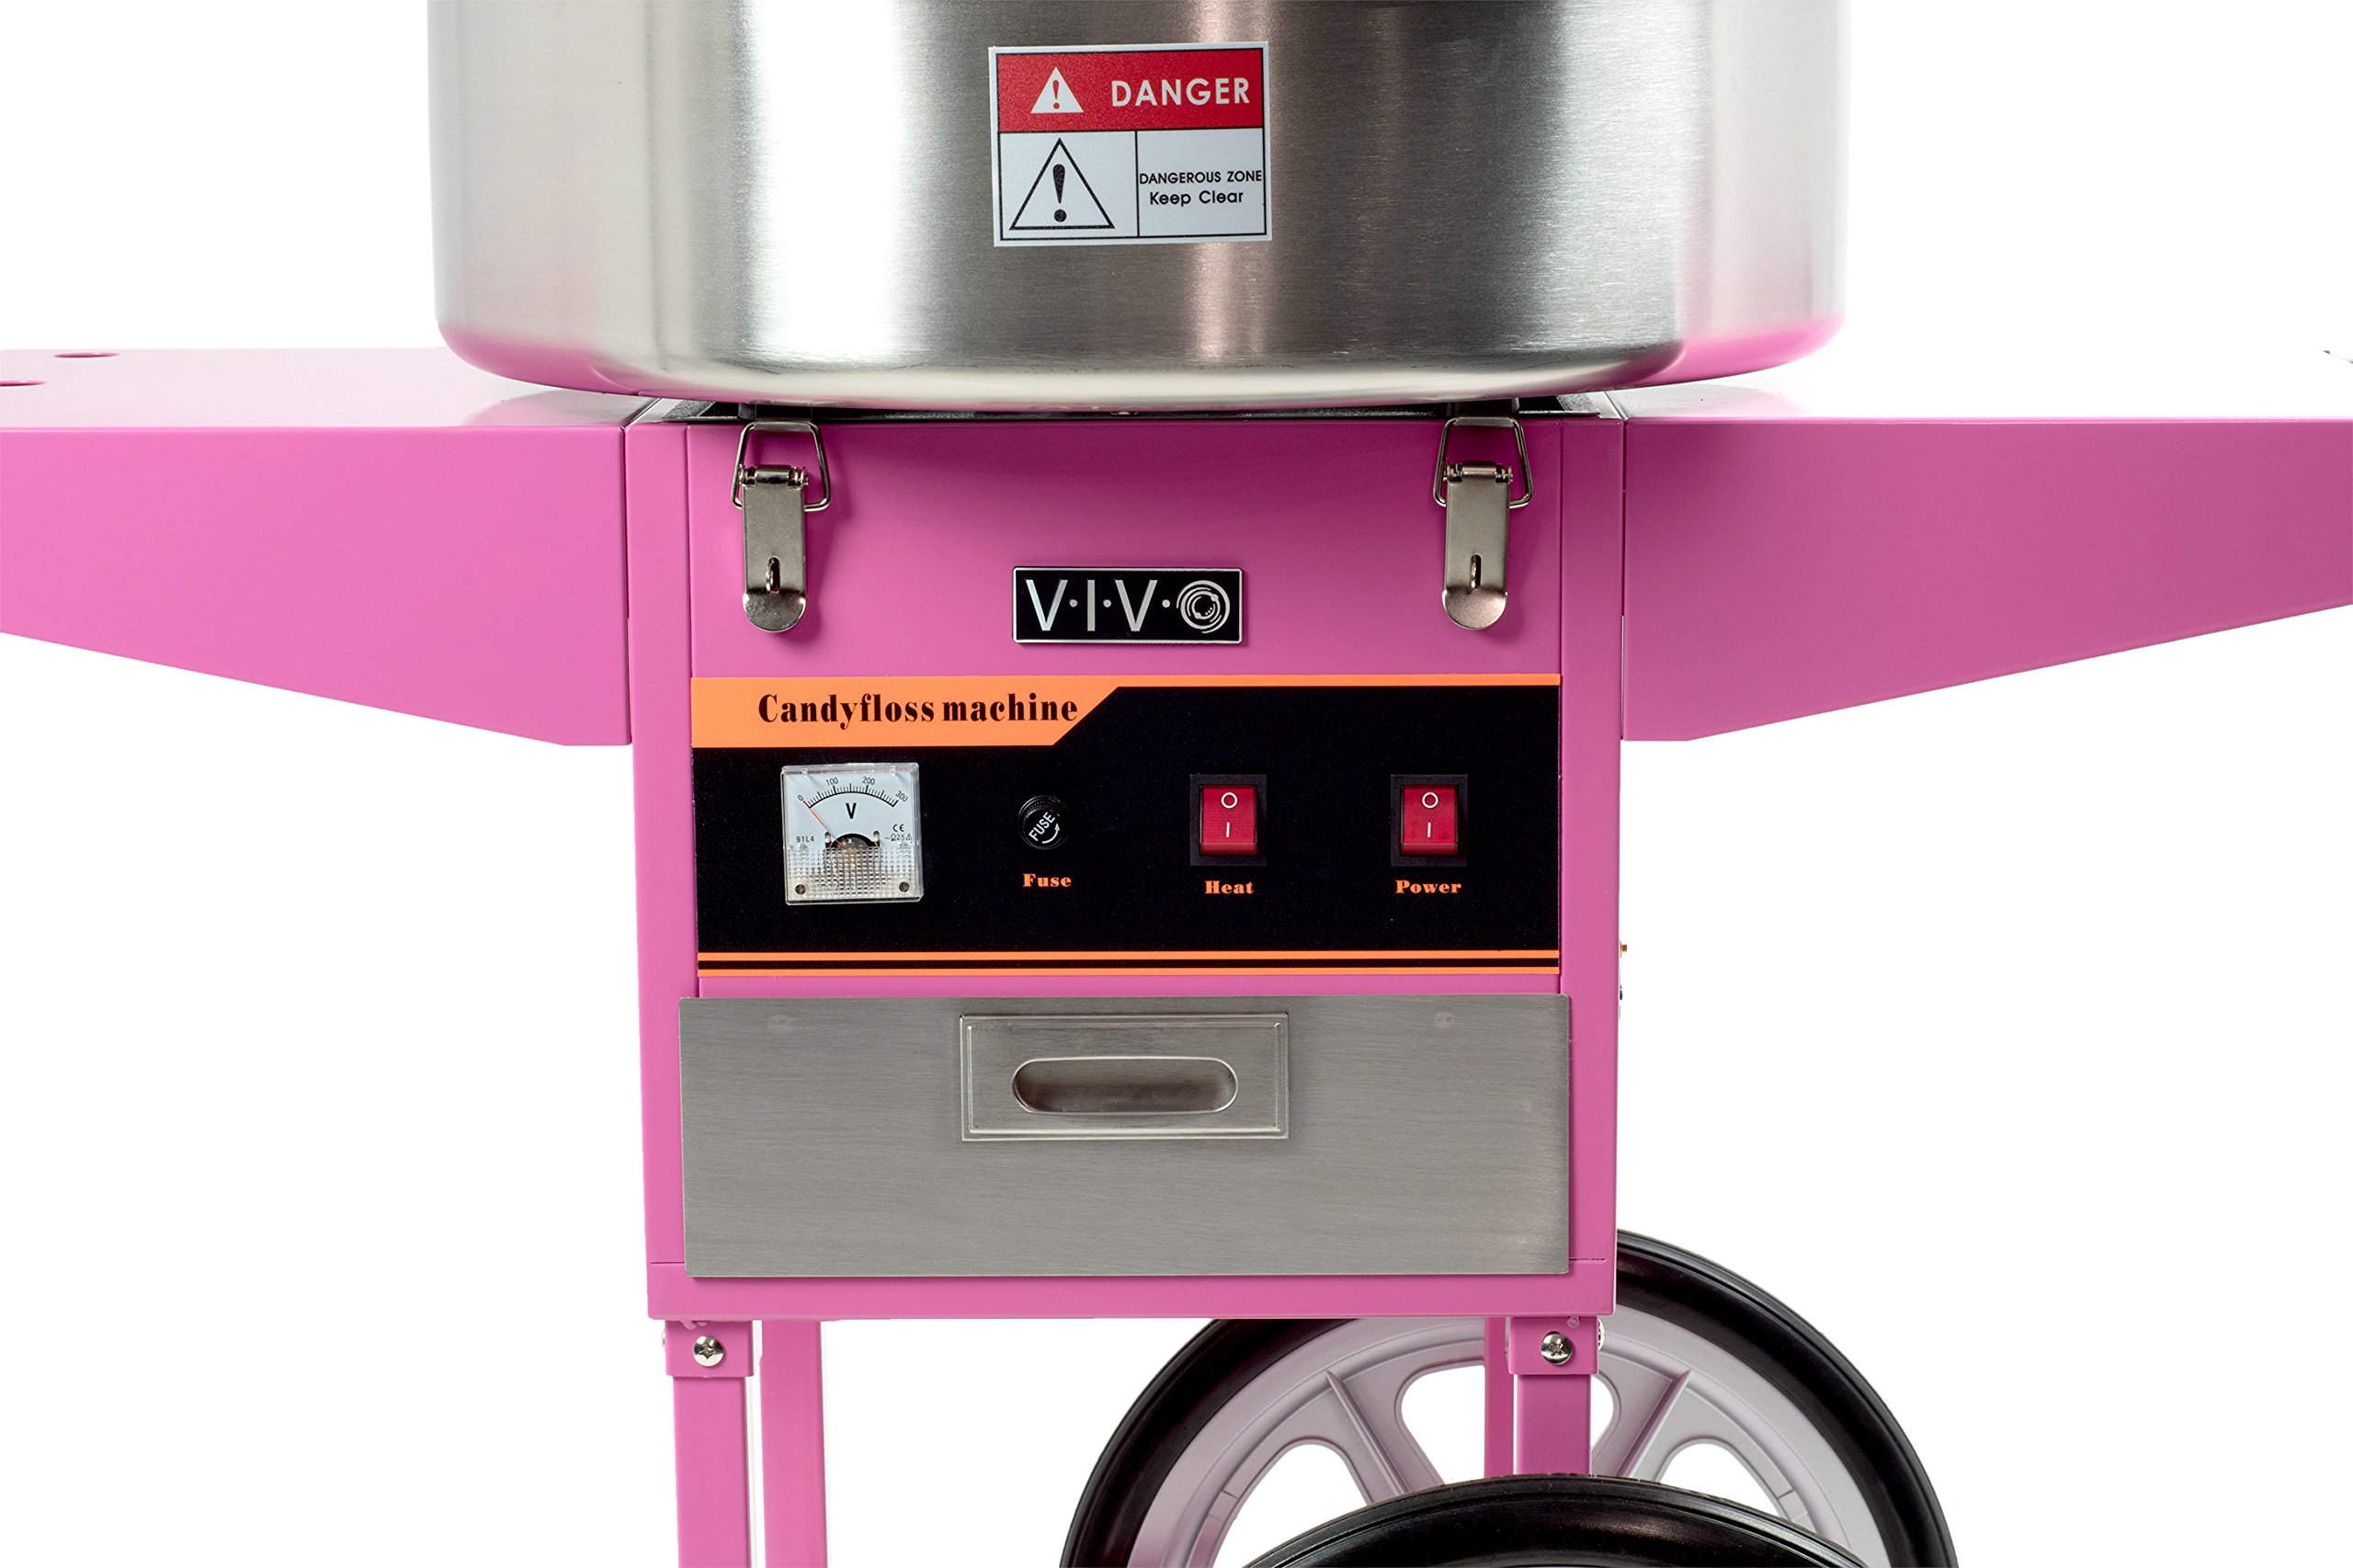 Electric Commercial Cotton Candy Machine / Candy Floss Maker Pink Cart Stand VIVO (CANDY-V002) by VIVO (Image #3)